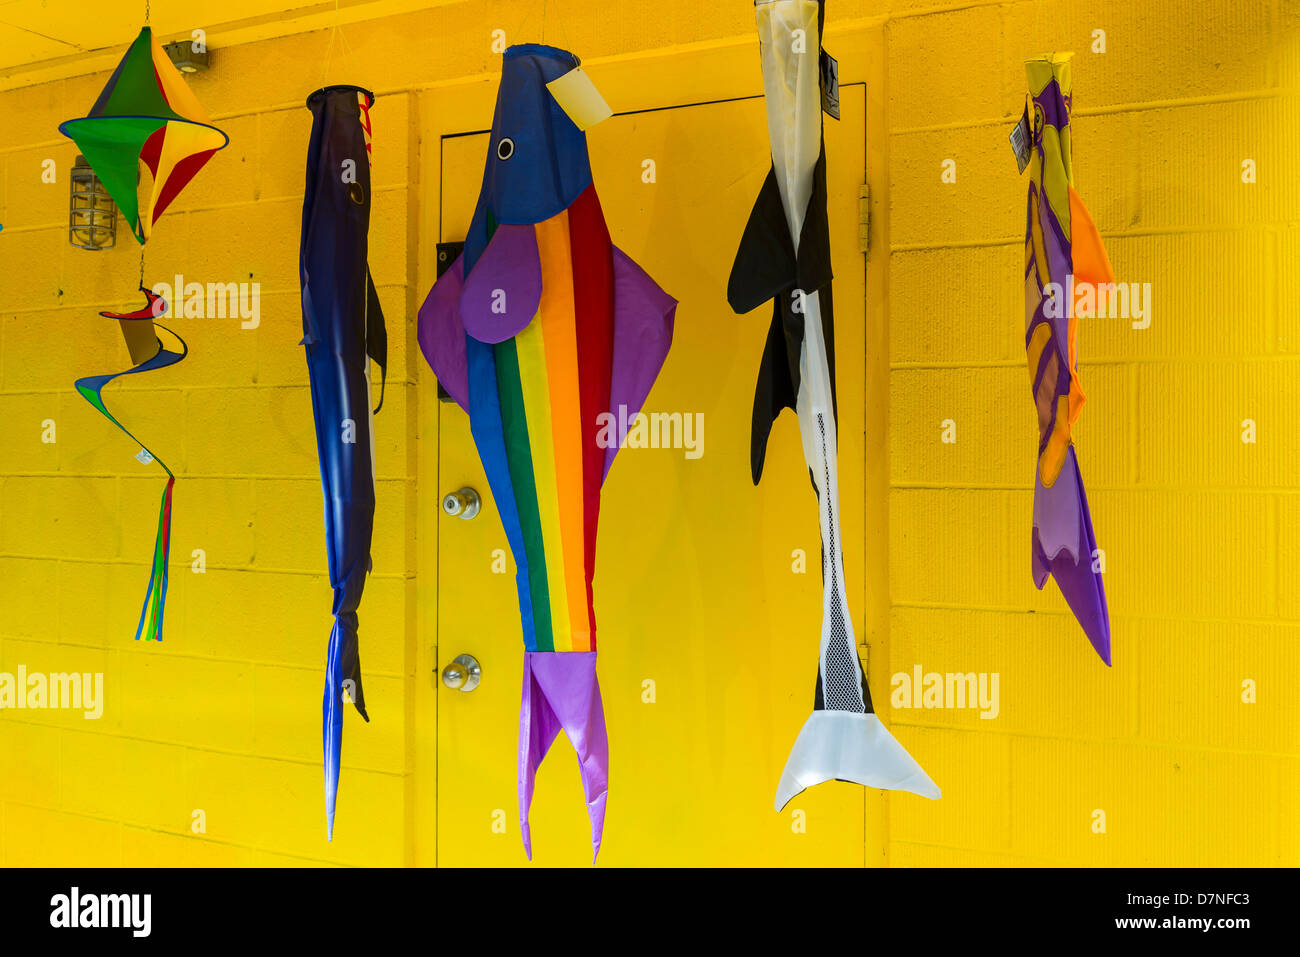 Colourful fish banners, Cowichan Bay, British Columbia, Canada - Stock Image